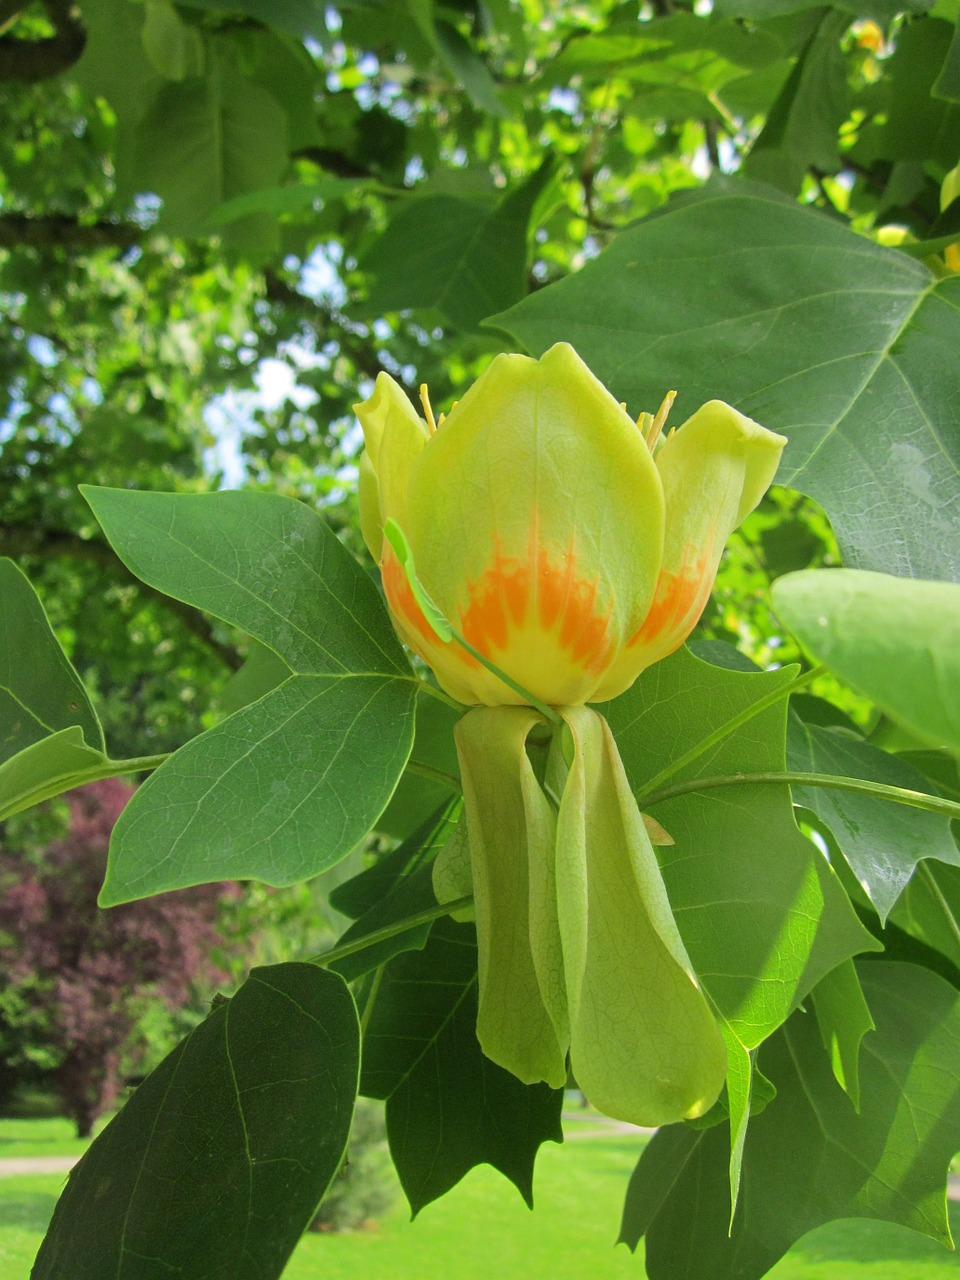 liriodendron tulipifera,tulip tree,american tulip tree,tuliptree,tulip poplar,whitewood,fiddle-tree,yellow poplar,tree,flora,botany,plant,species,free pictures, free photos, free images, royalty free, free illustrations, public domain